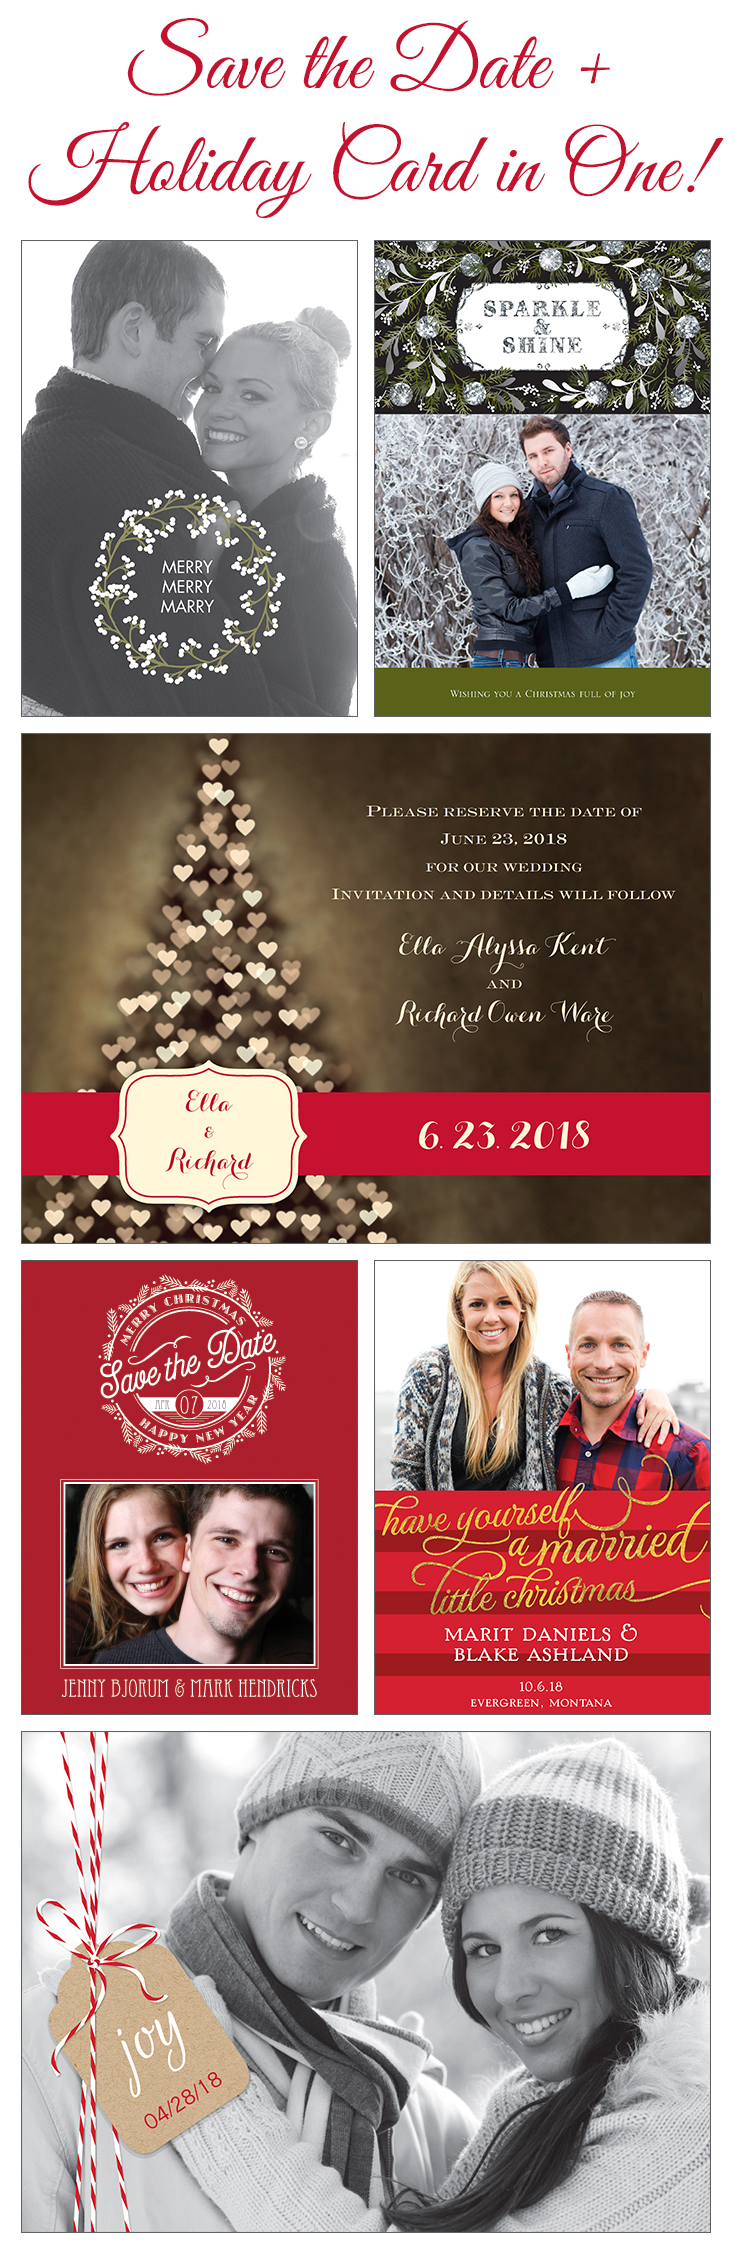 Pin by wedding chicks on Invitations & Paper | Pinterest | Holidays ...